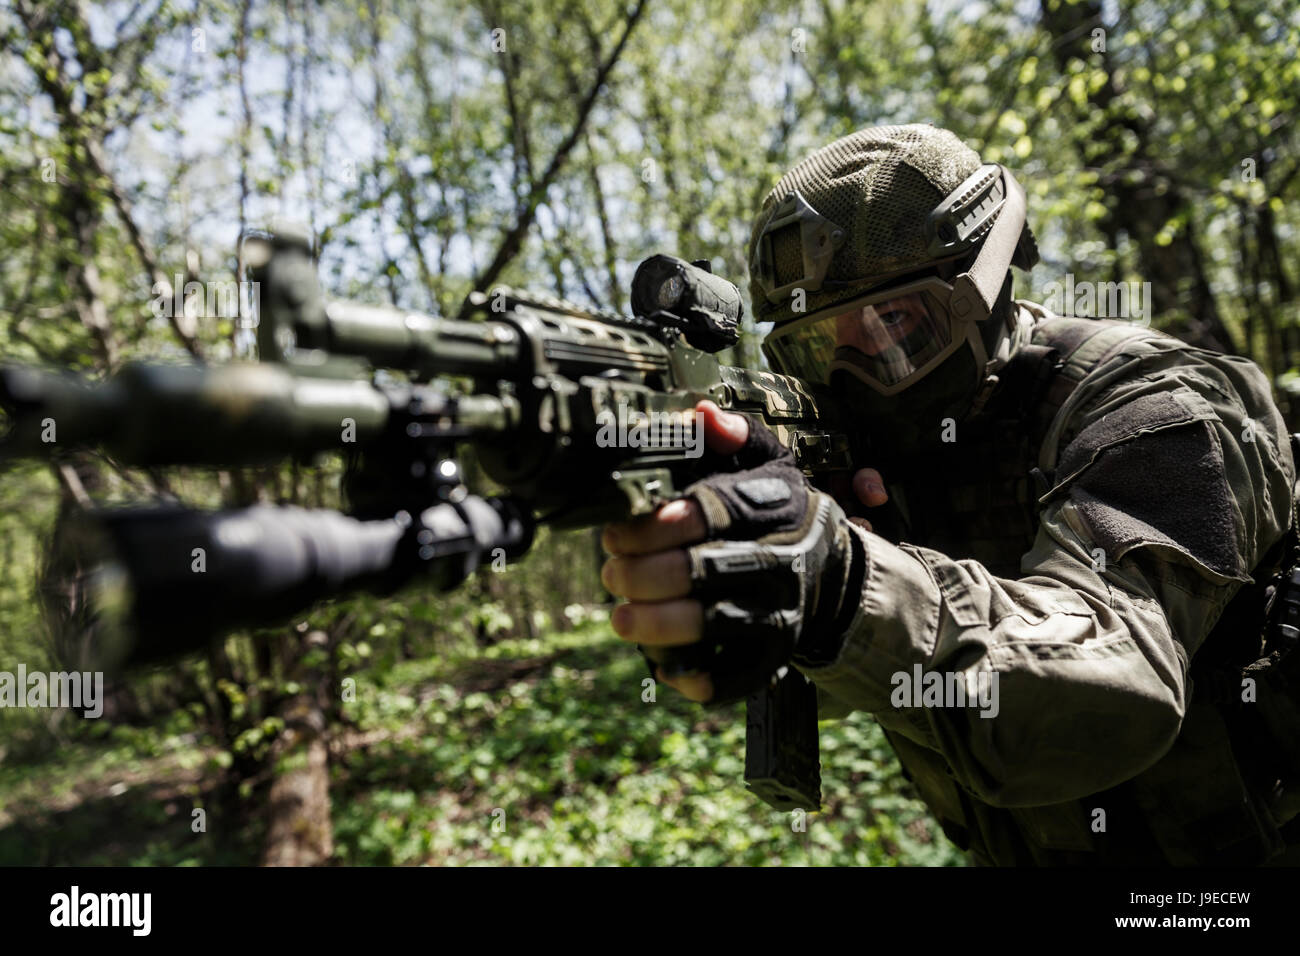 Soldier with aiming submachine gun - Stock Image